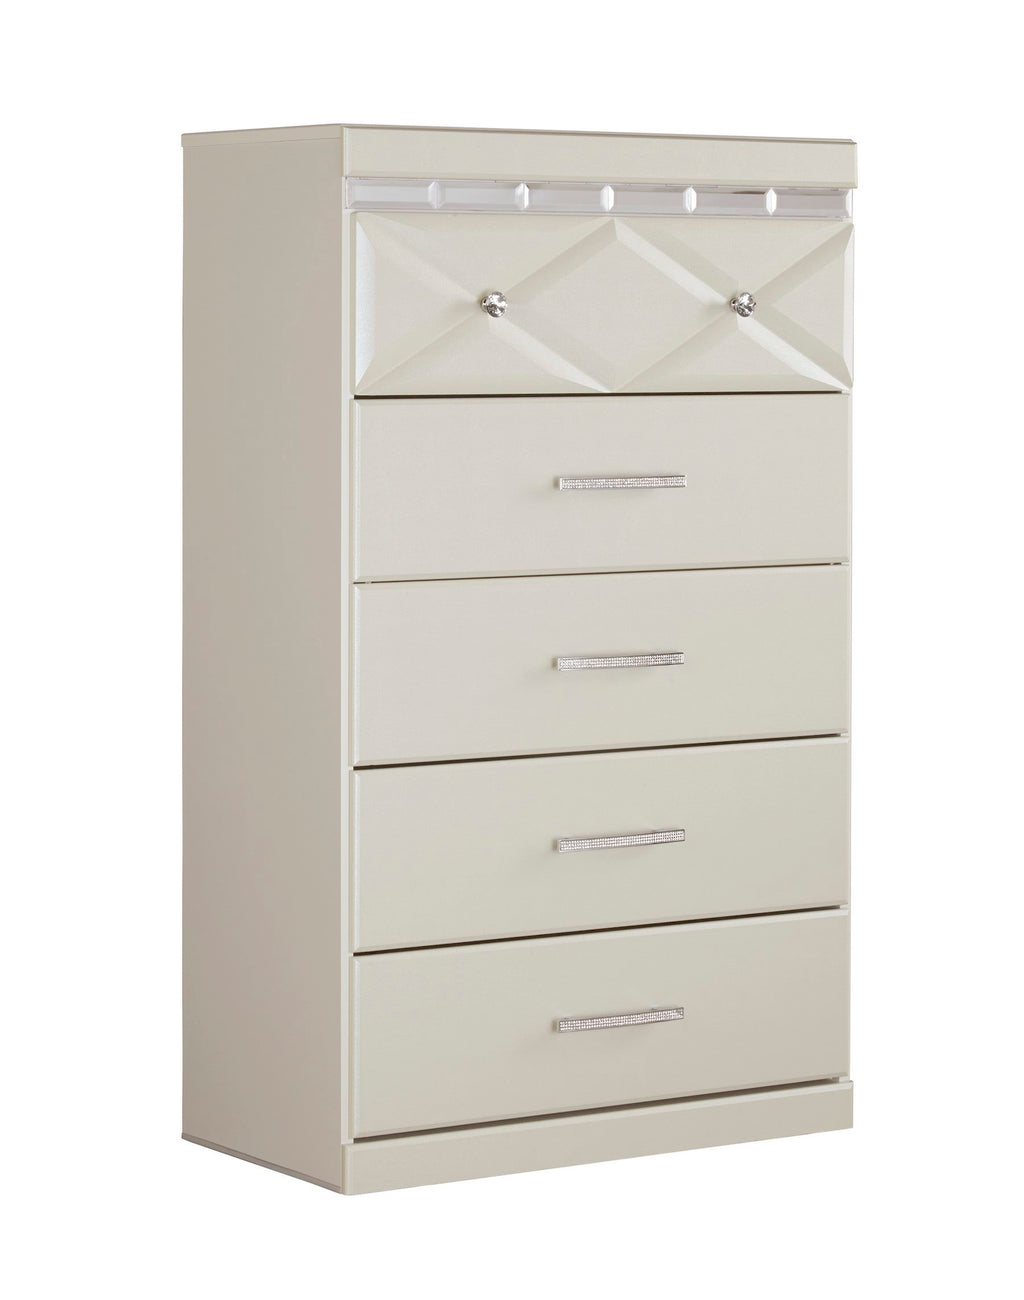 Ashley Dreamur Five Drawer Chest in Champagne - The Furniture Space.